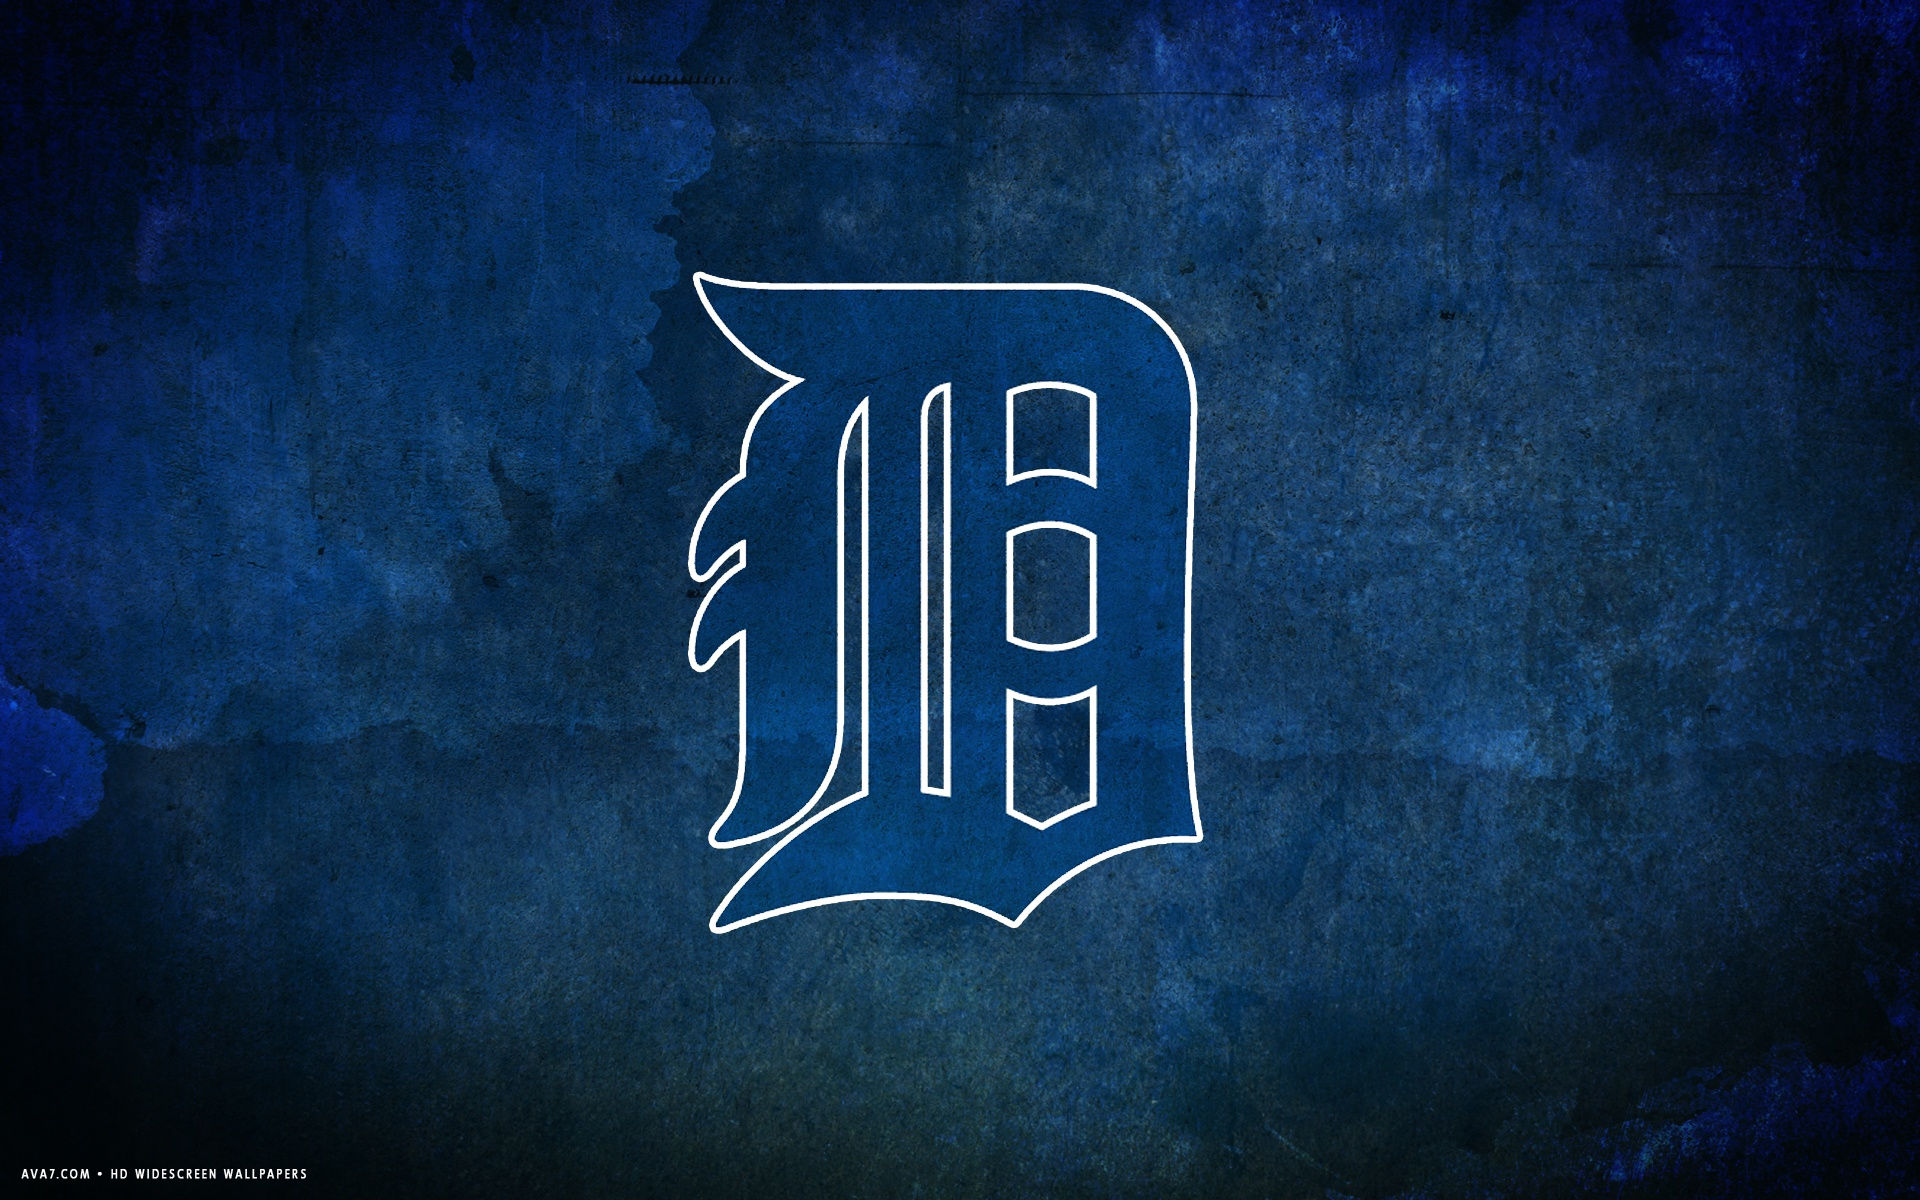 detroit tigers mlb baseball team hd widescreen wallpaper 1920x1200